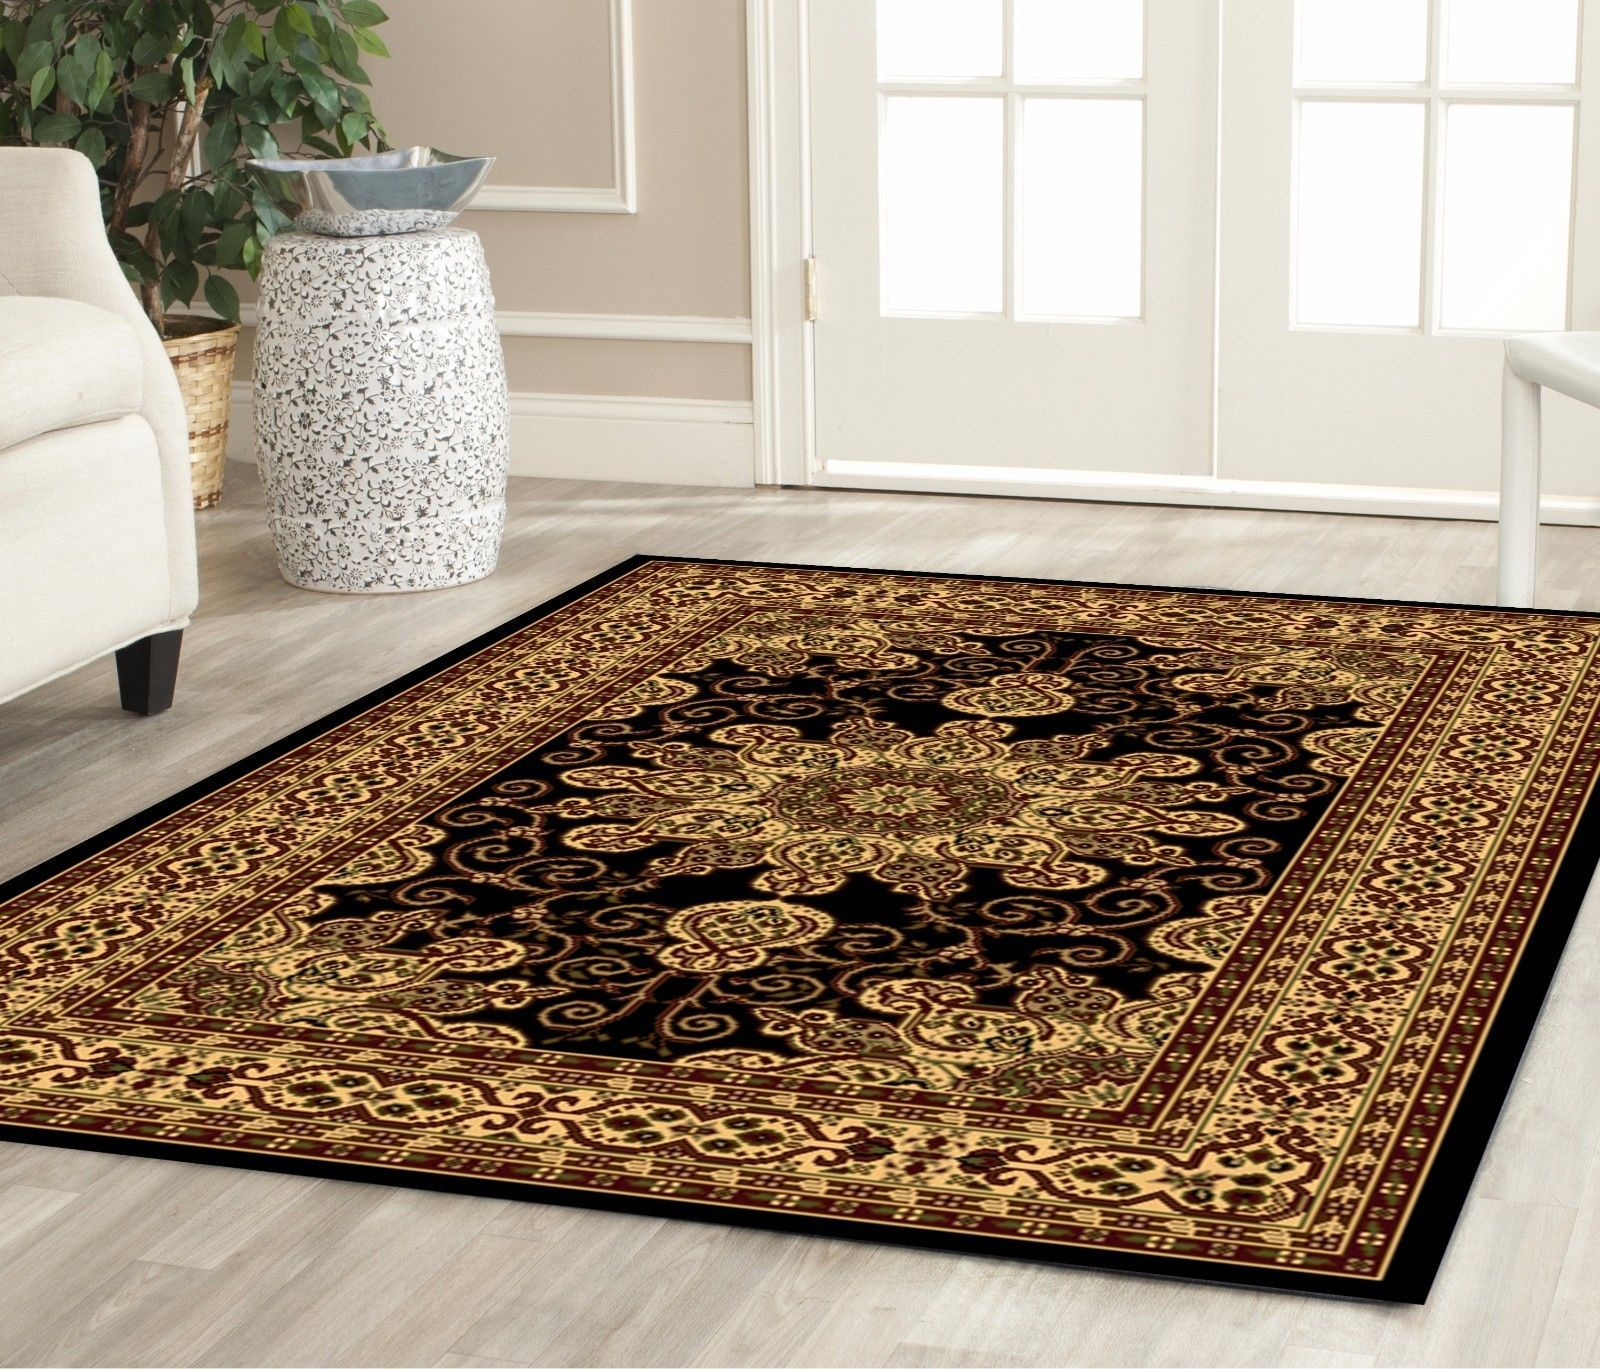 Traditional area rug living room kitchen floorin carpet for Traditional kitchen rugs